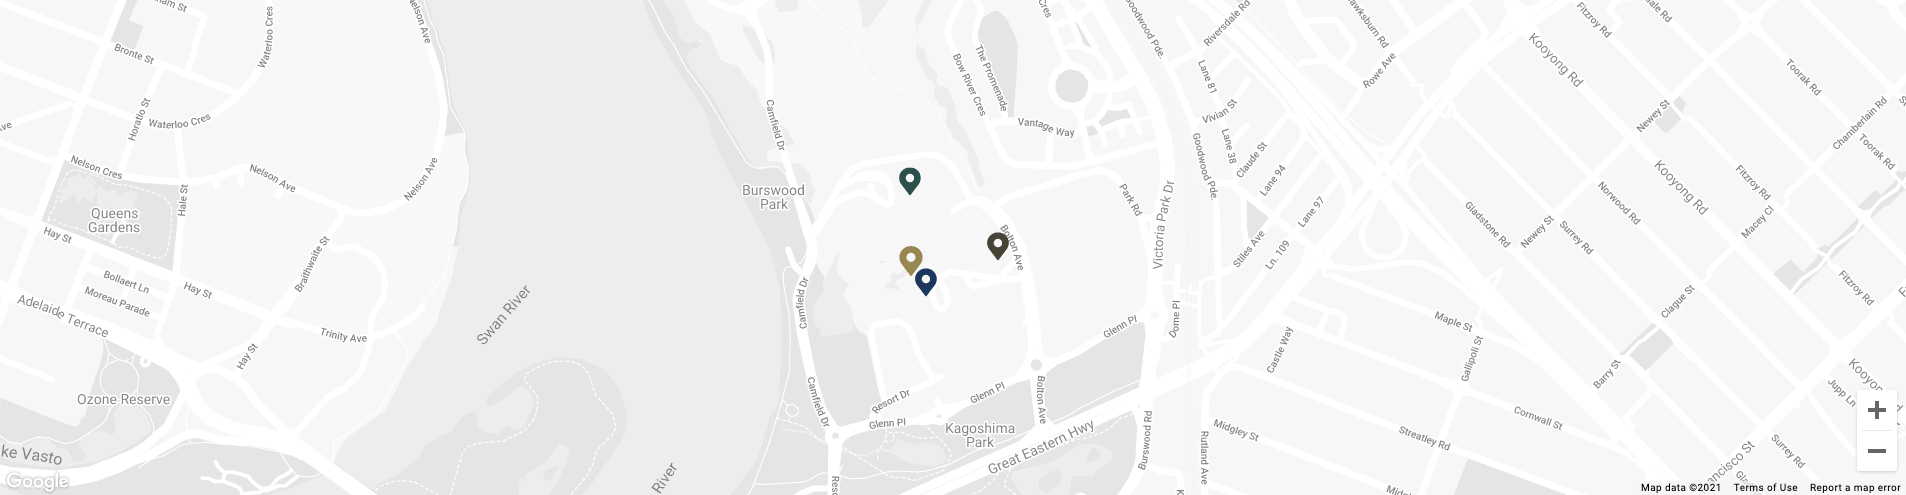 Map image of Poolside Bar & Grill